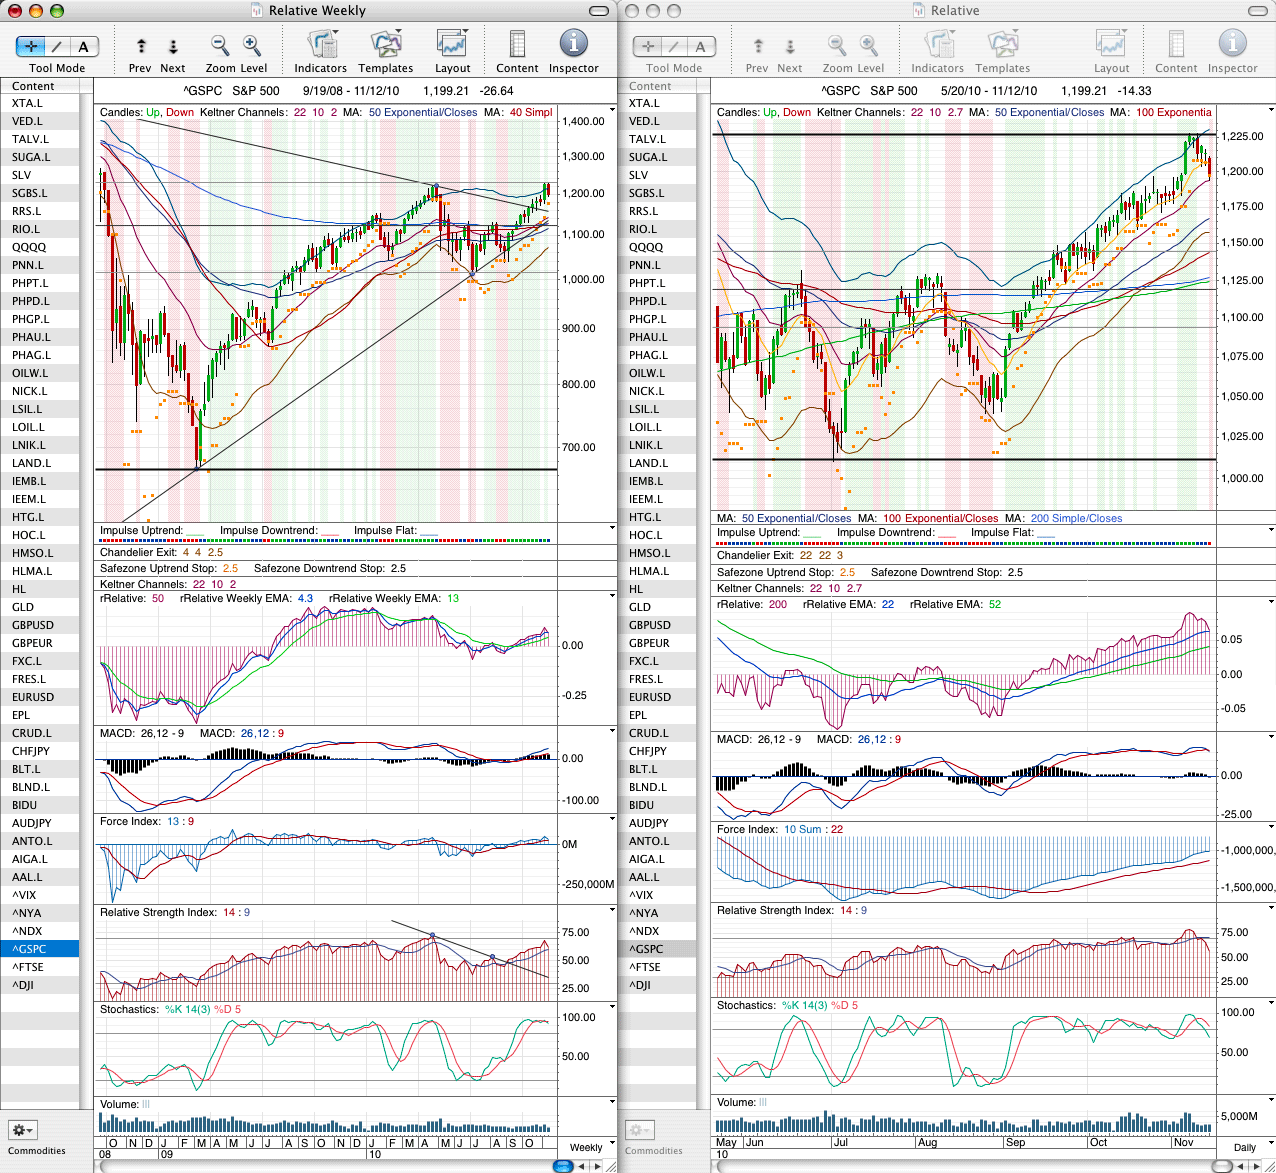 sp500_weekly_12-11-10.png